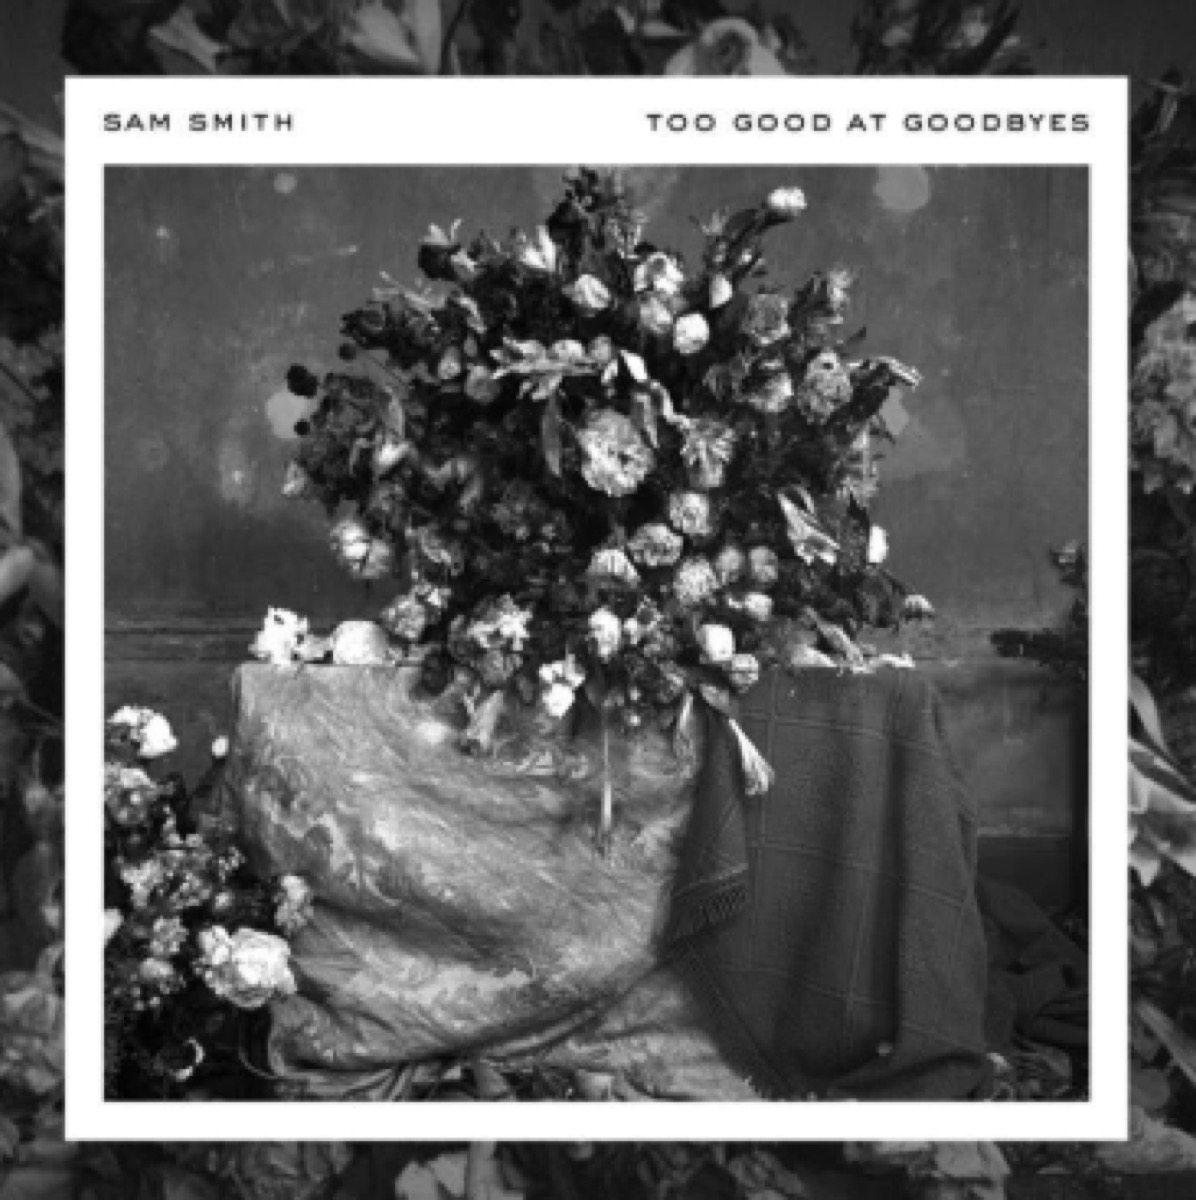 too good at goodbyes sam smith cover art